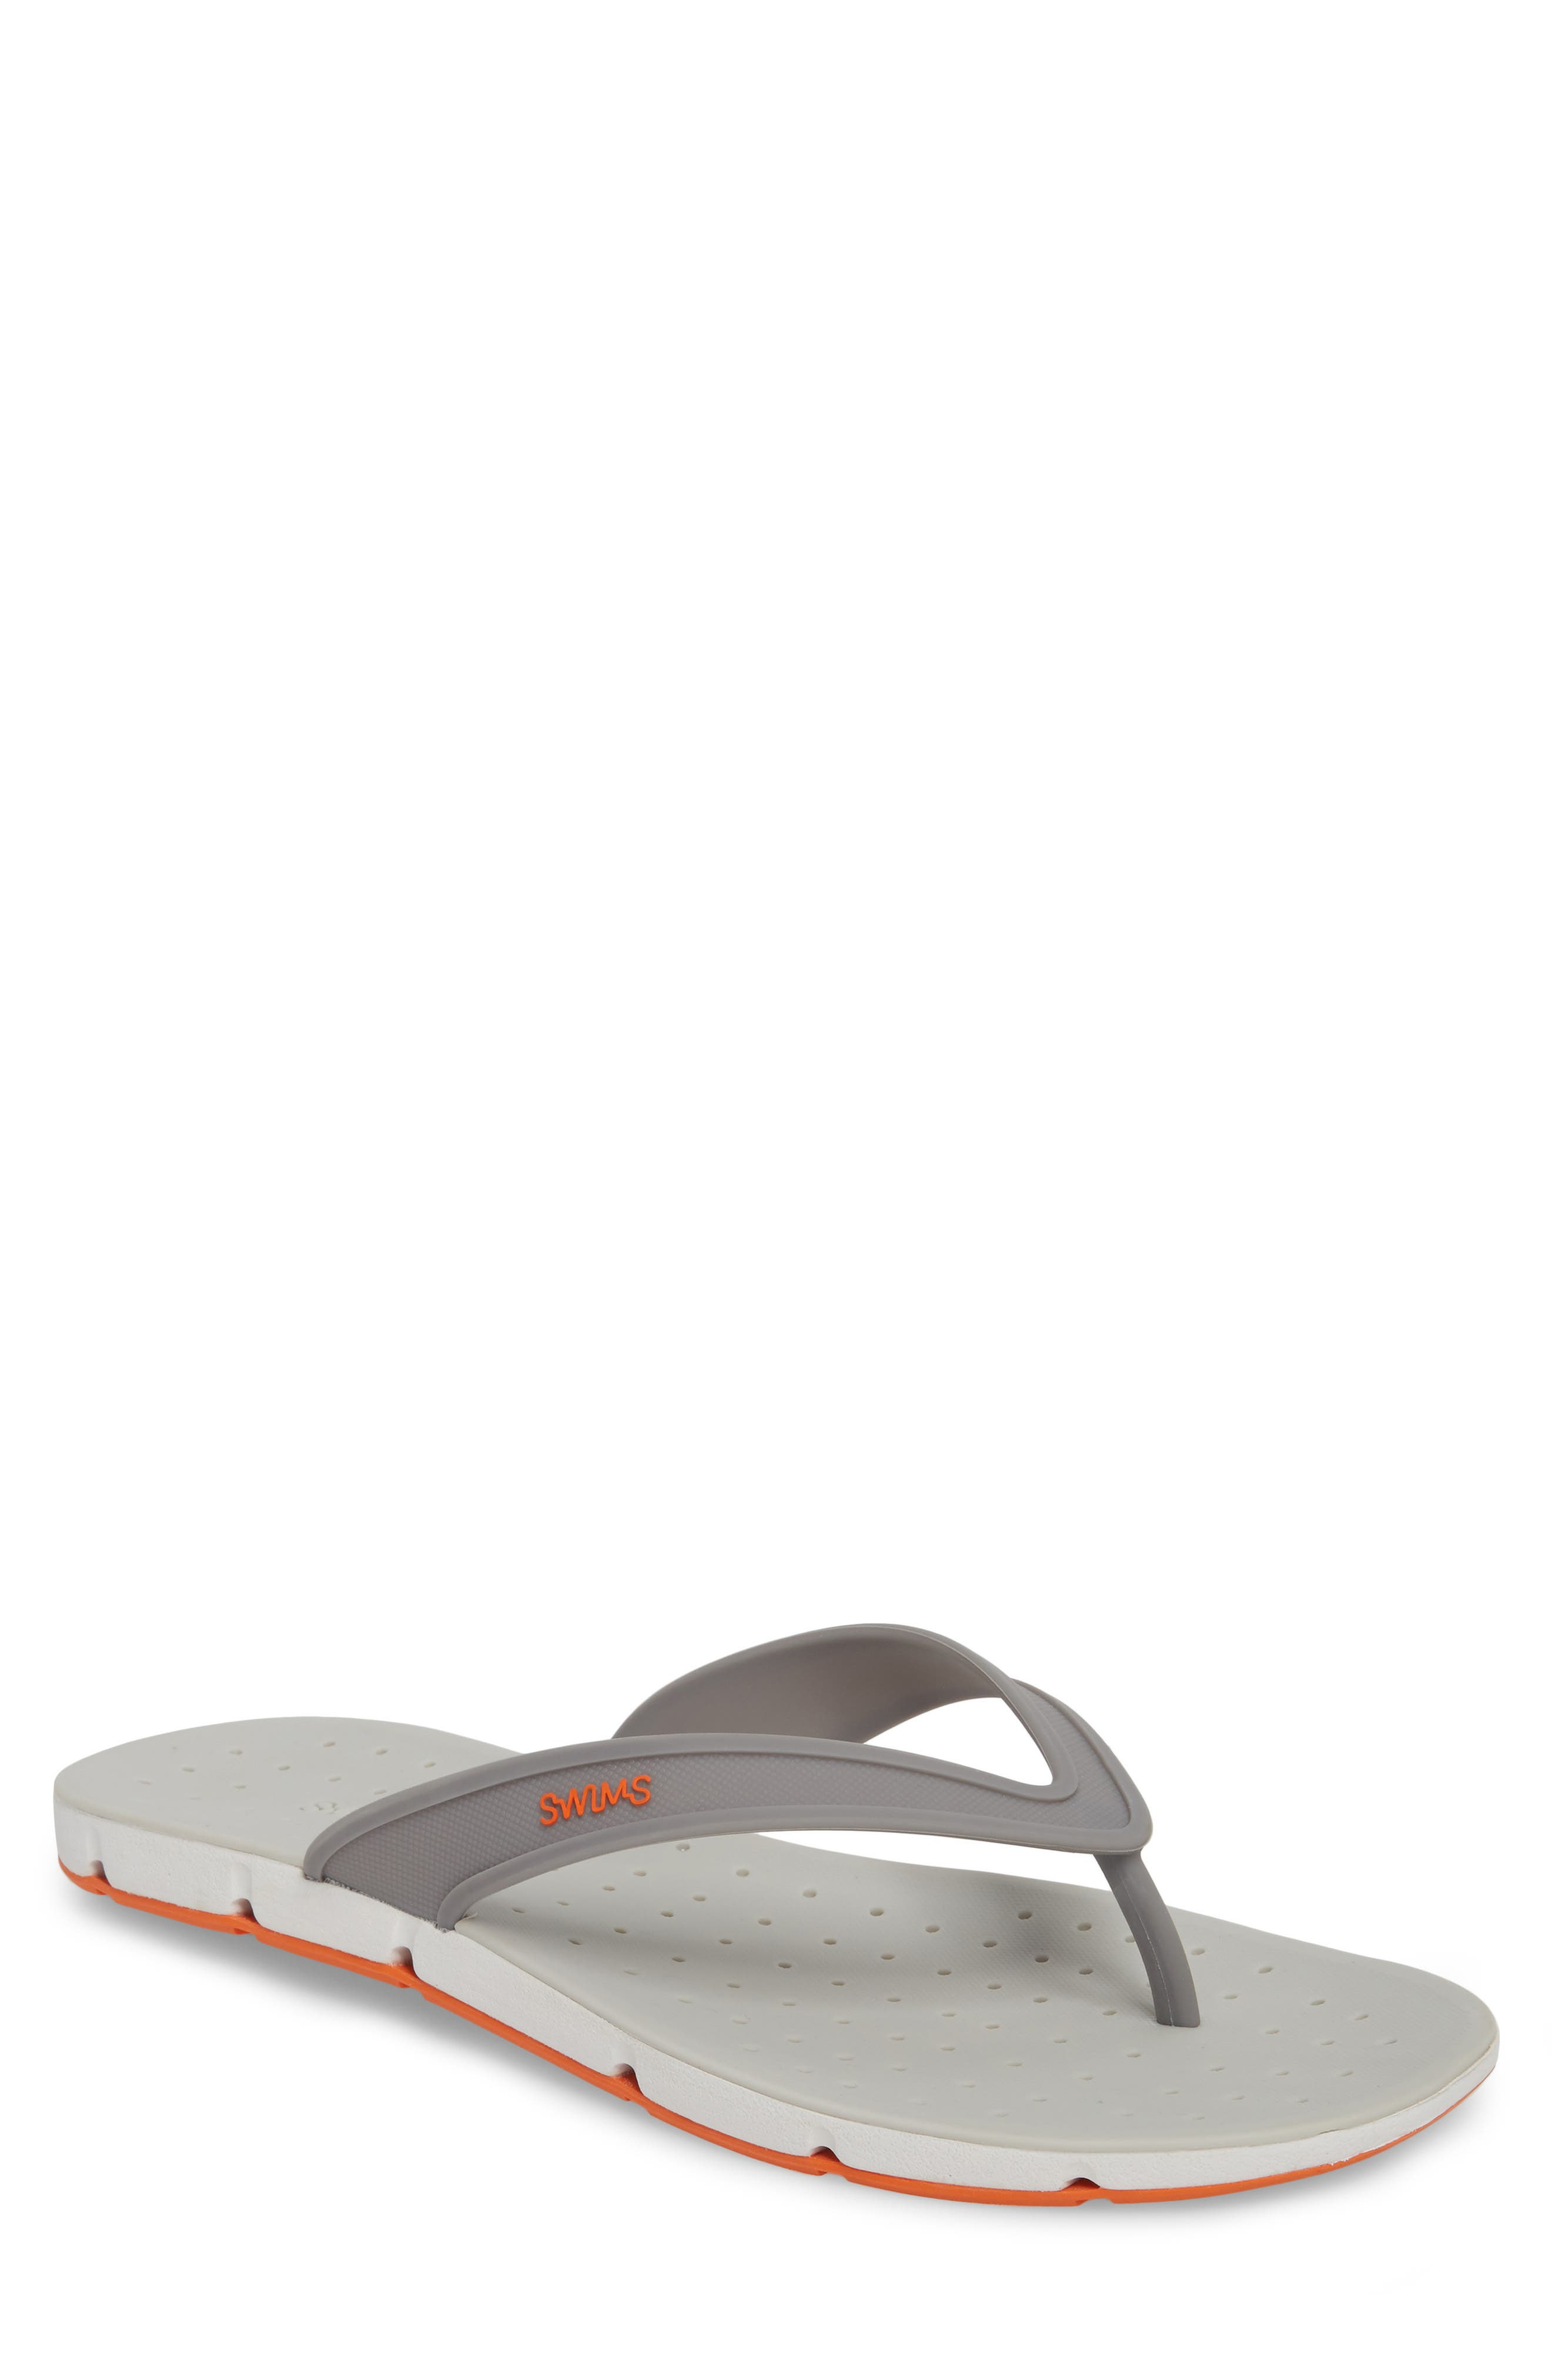 Breeze Flip Flop,                             Main thumbnail 1, color,                             GRAY / WHITE / ORANGE